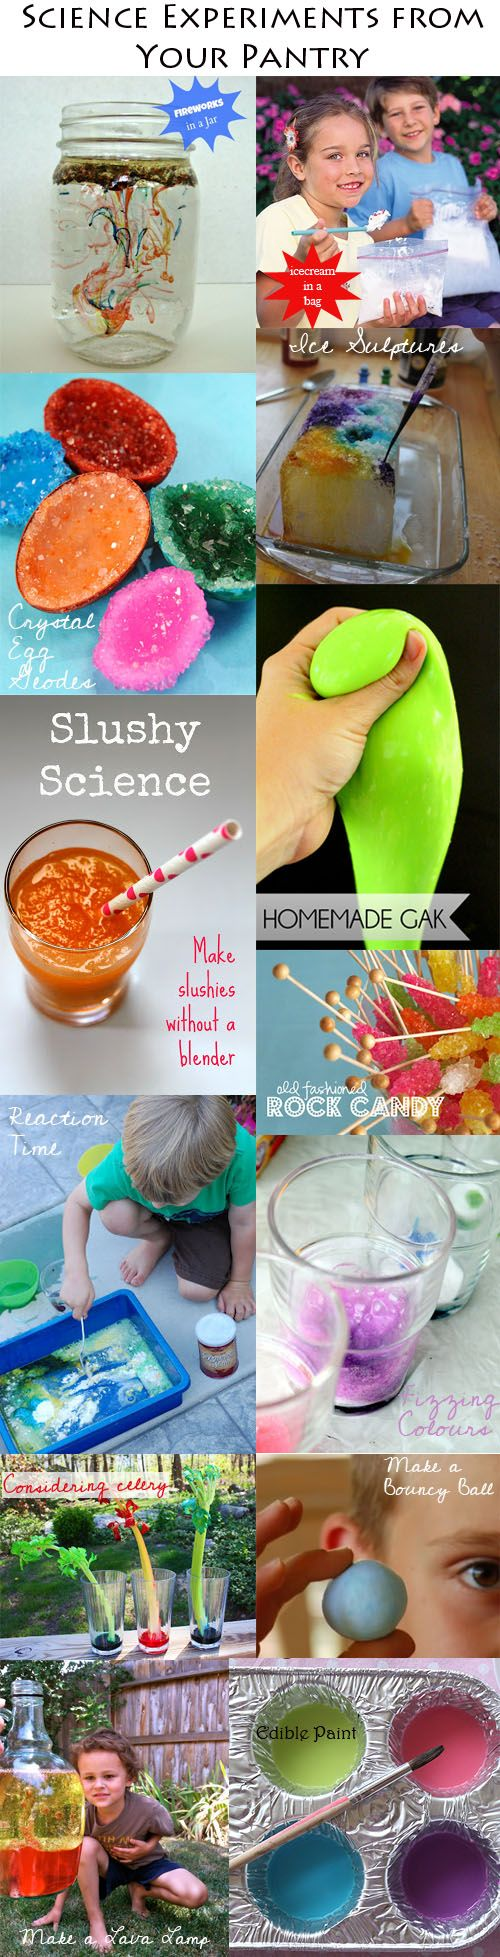 KidStyleFile Roundup: Cool Kids Science Experiments To Make With Pantry Items